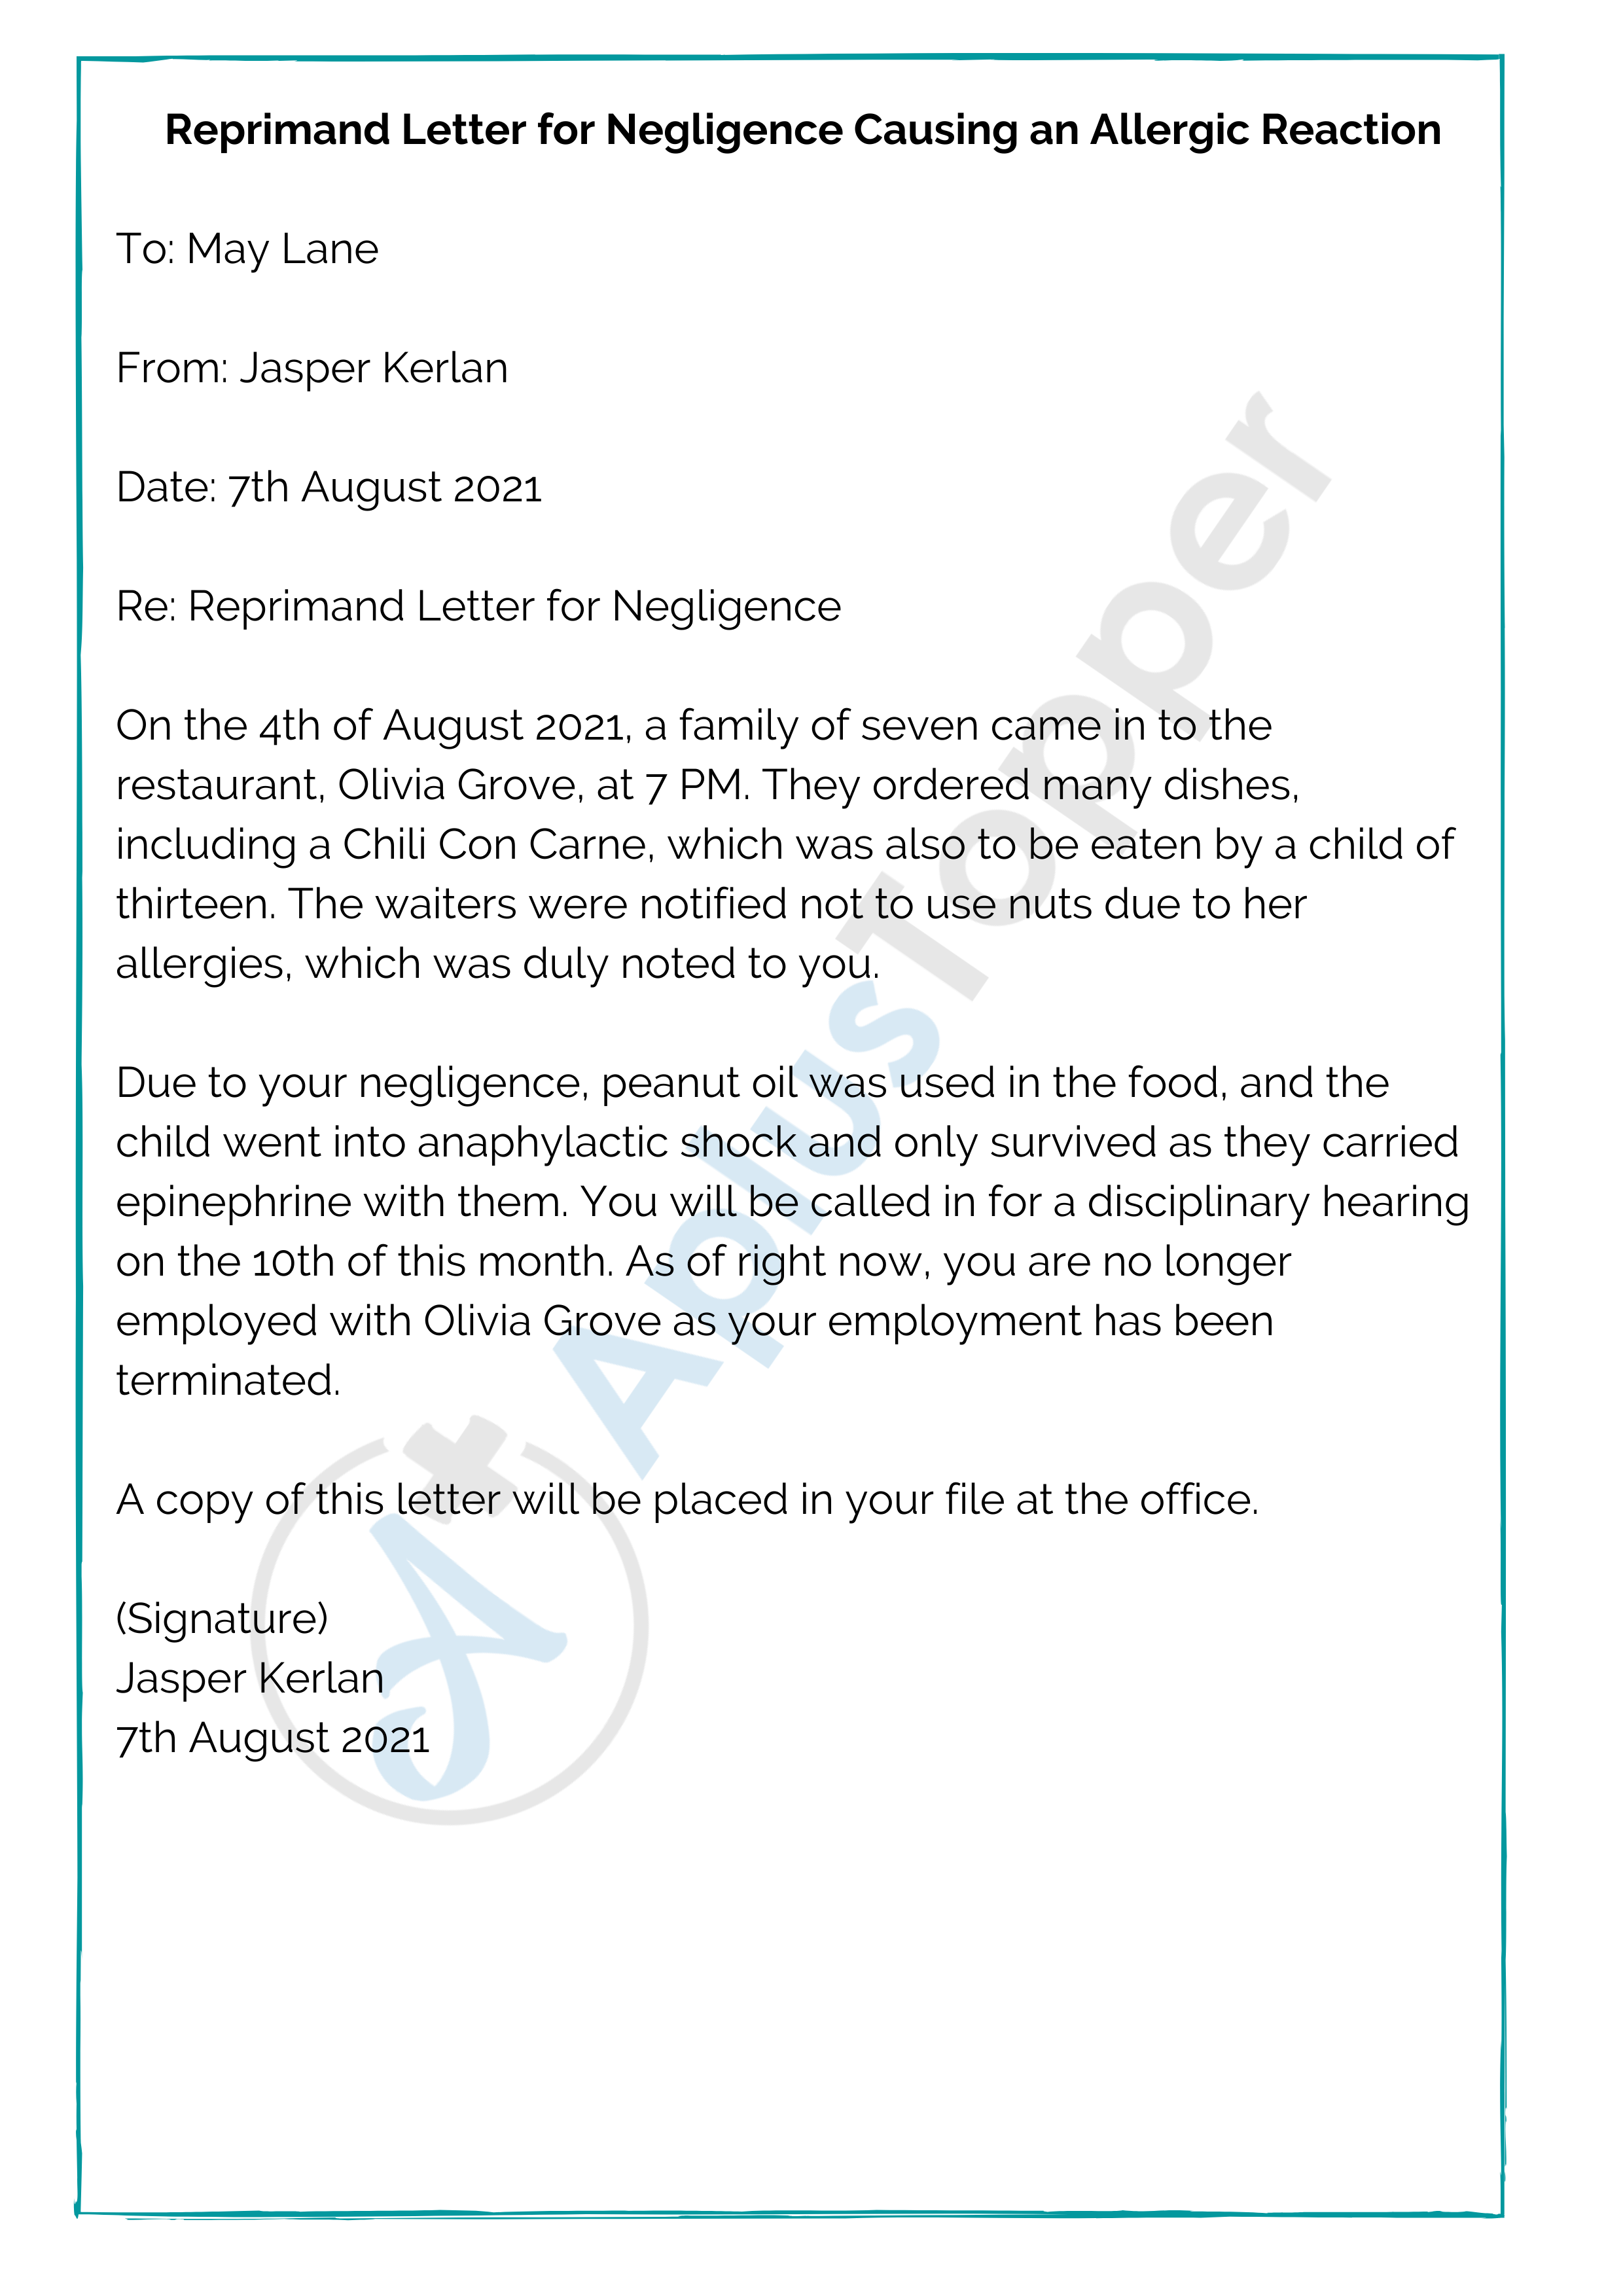 Reprimand Letter for Negligence Causing an Allergic Reaction